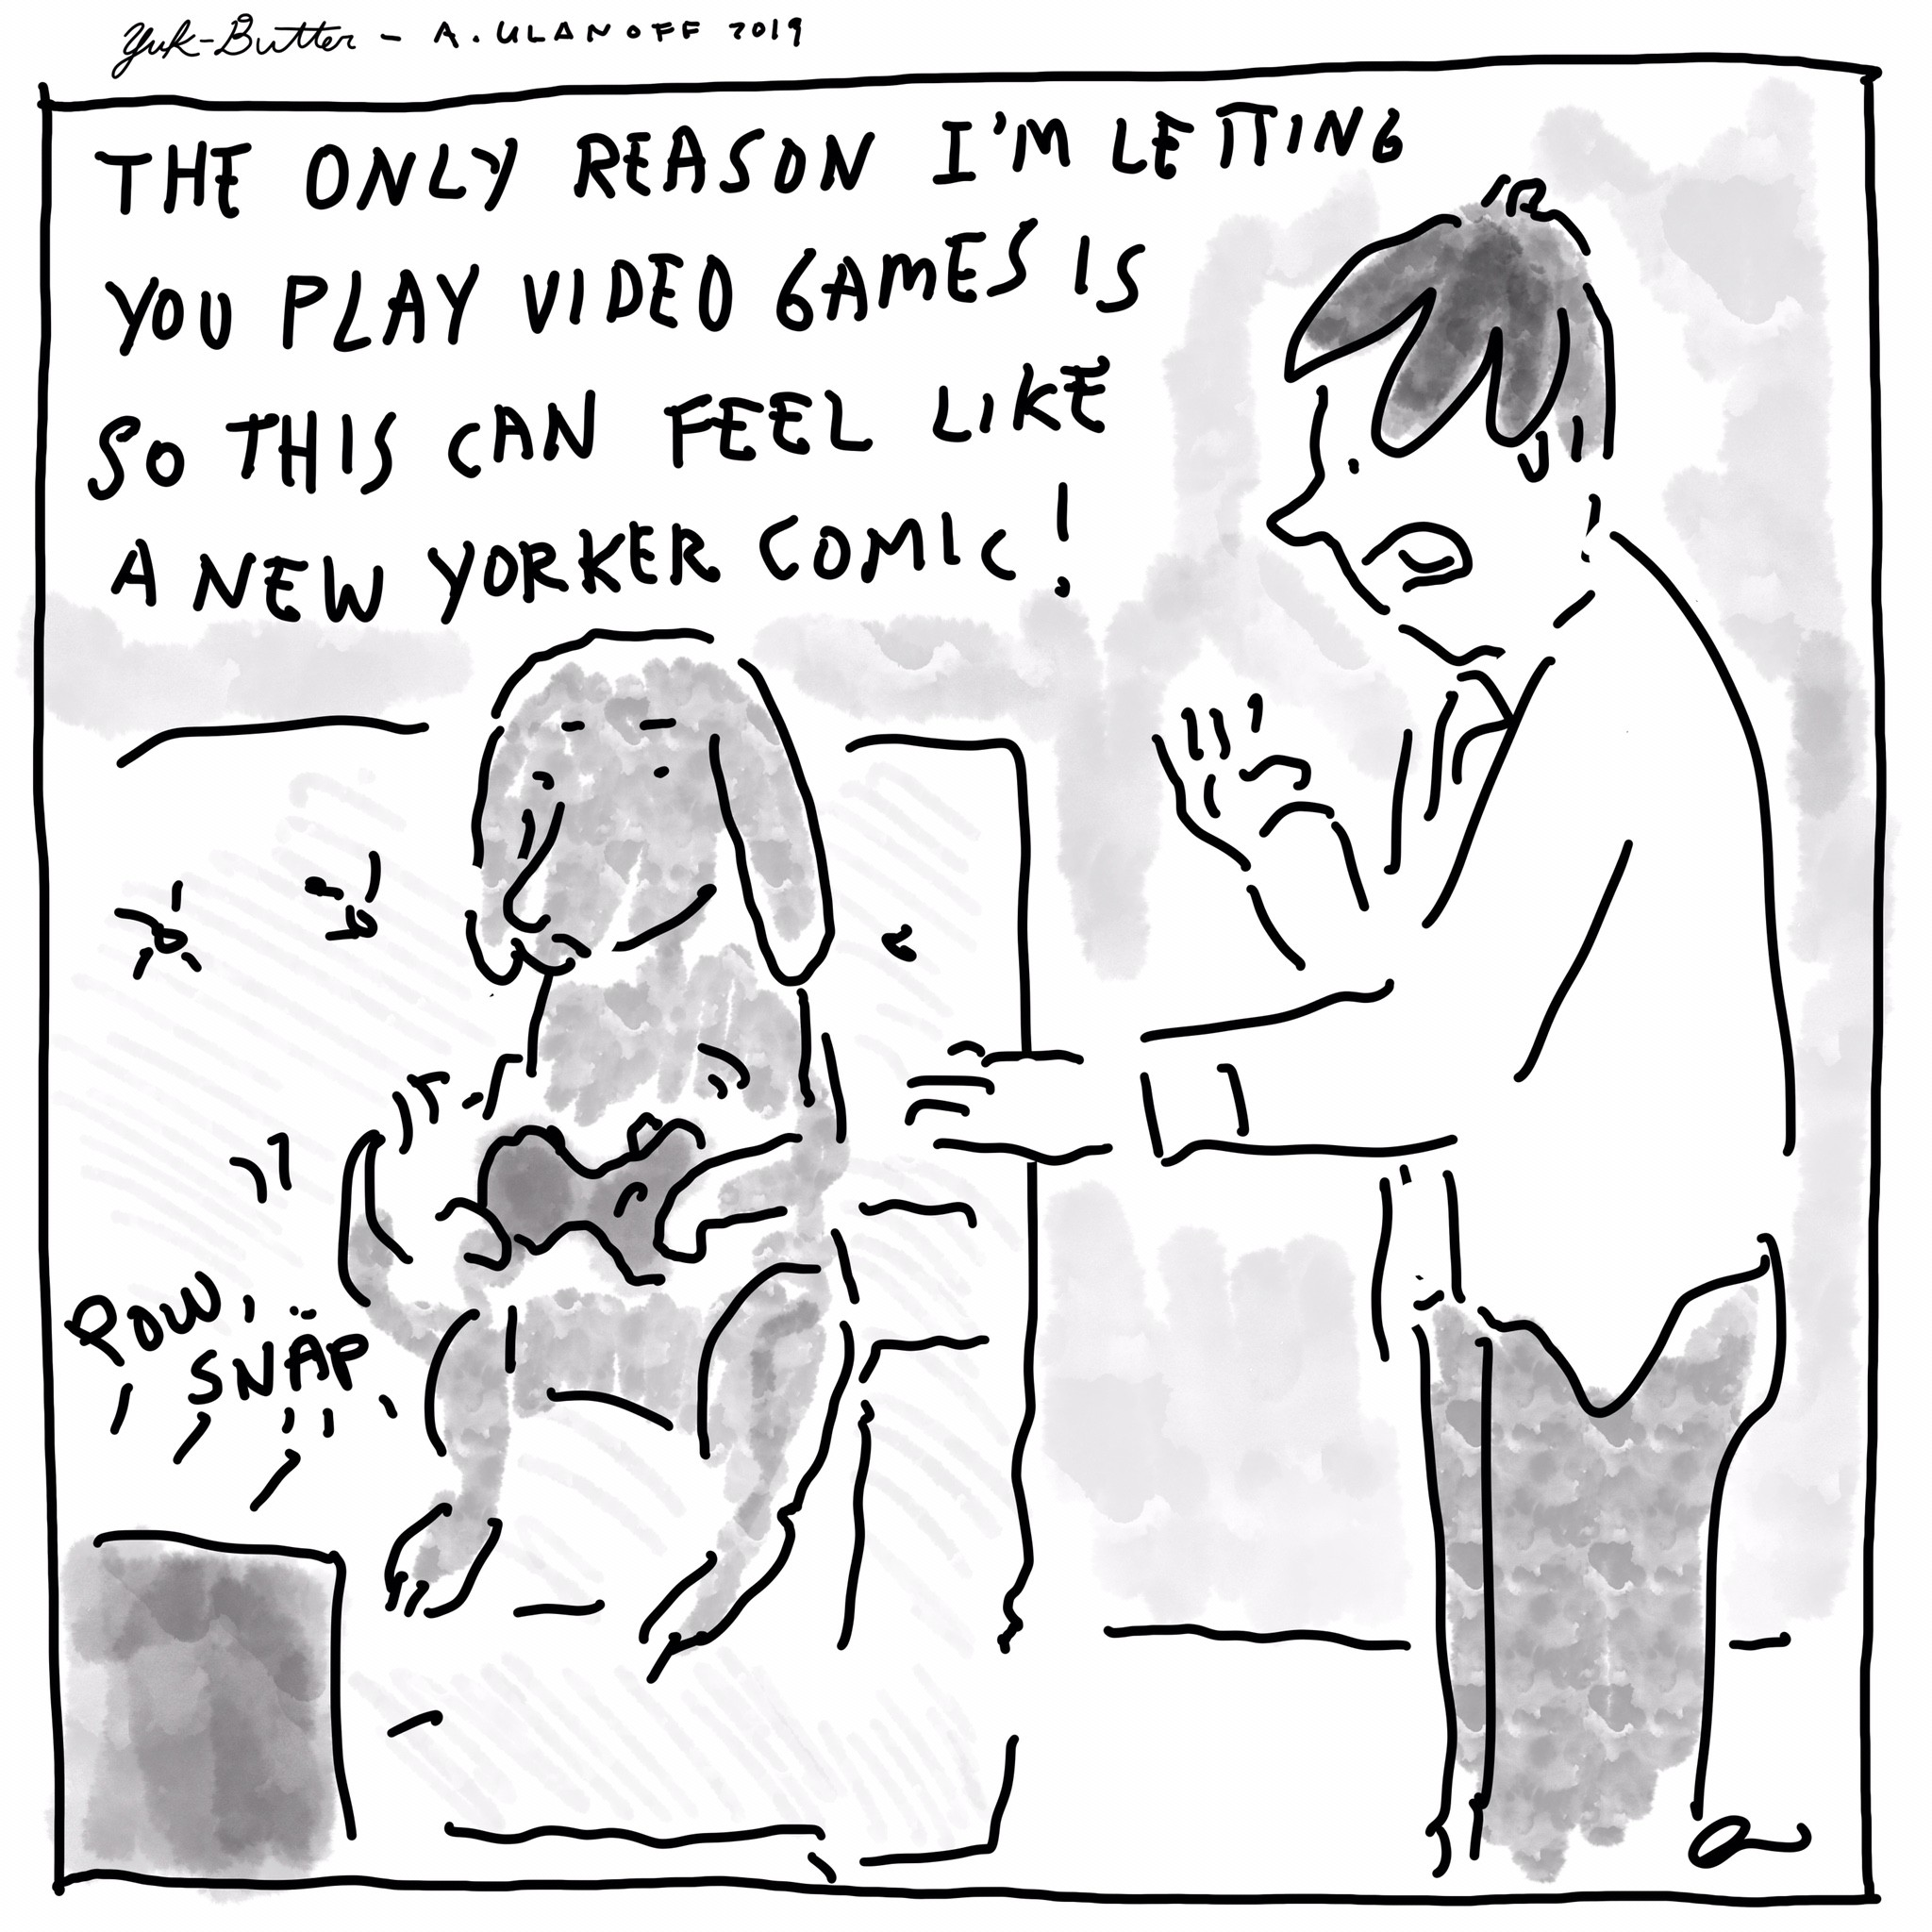 This is not a New Yorker comic